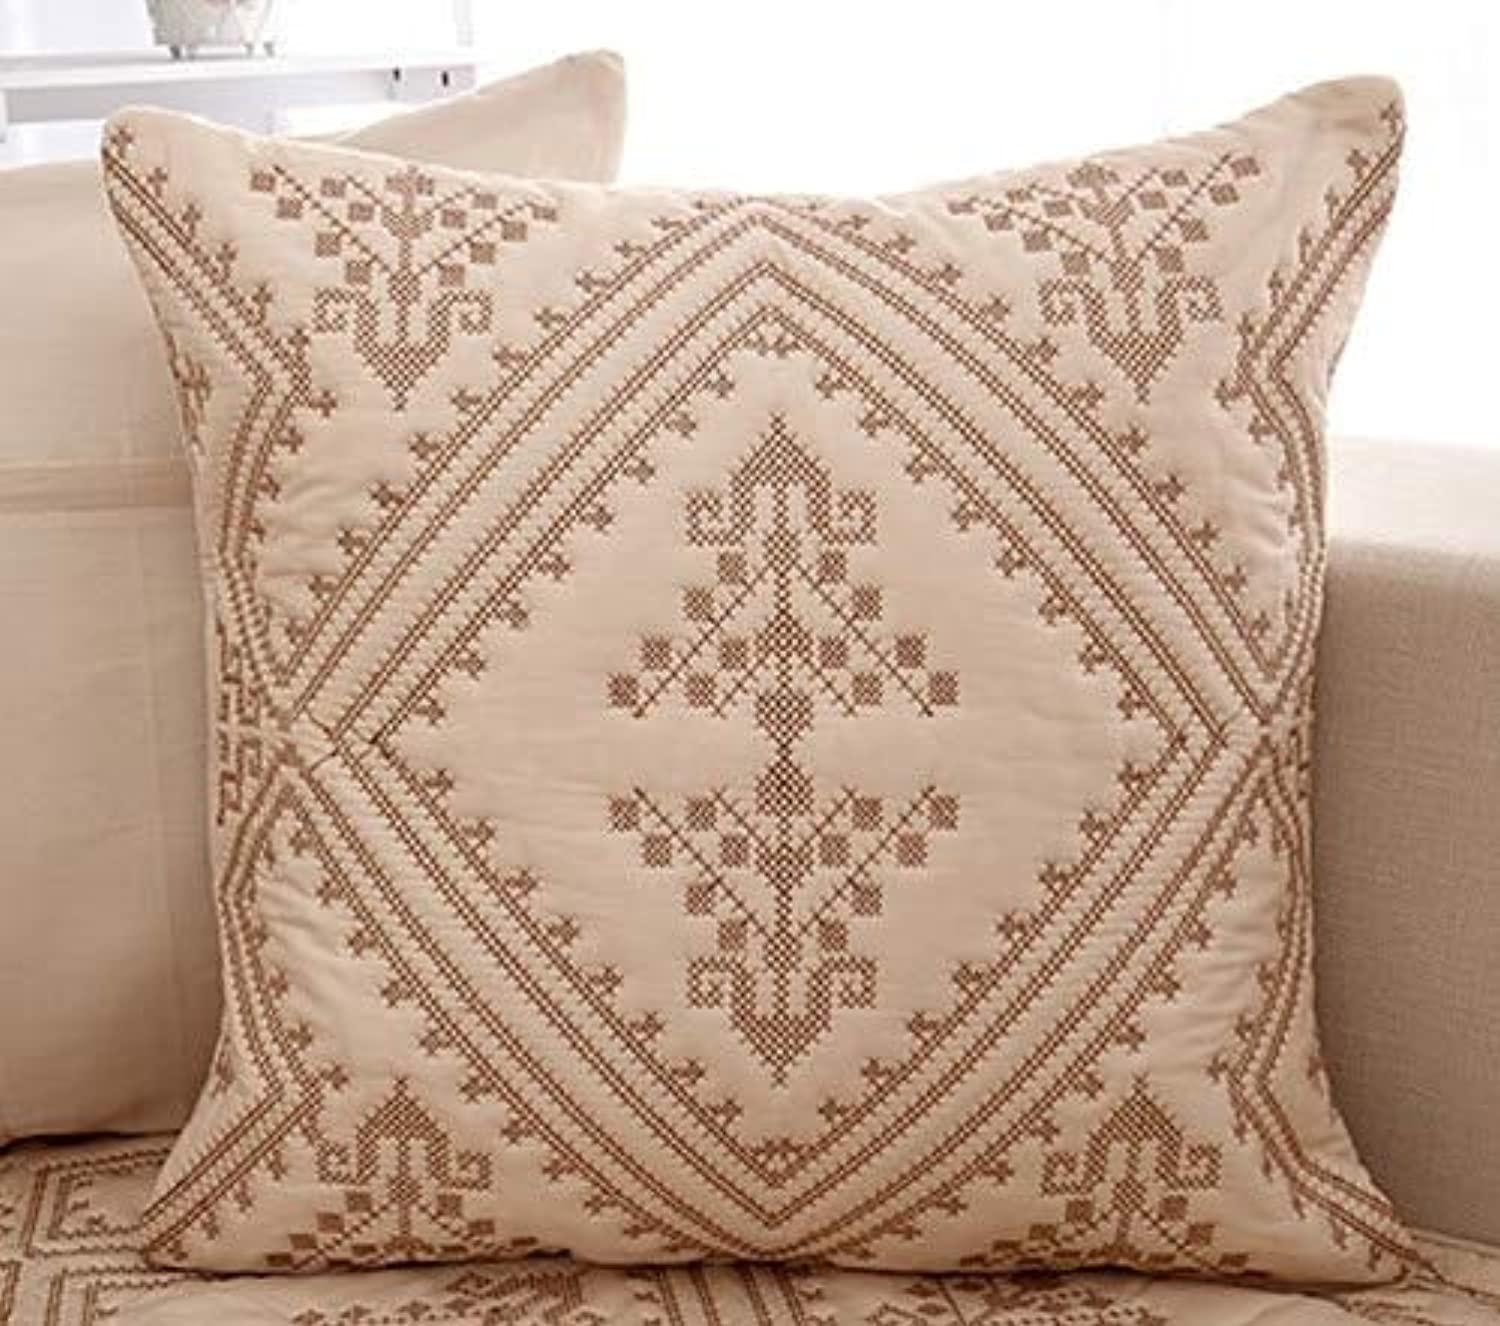 Farmerly 1Pcs Plaid Pattern Sofa Cover European Style Embroidered Slipcover Slip Resistant Sofa Seat Couch Cover for Living Room Decor   1PCS Pillowcase 02, 90x90cm 1pc